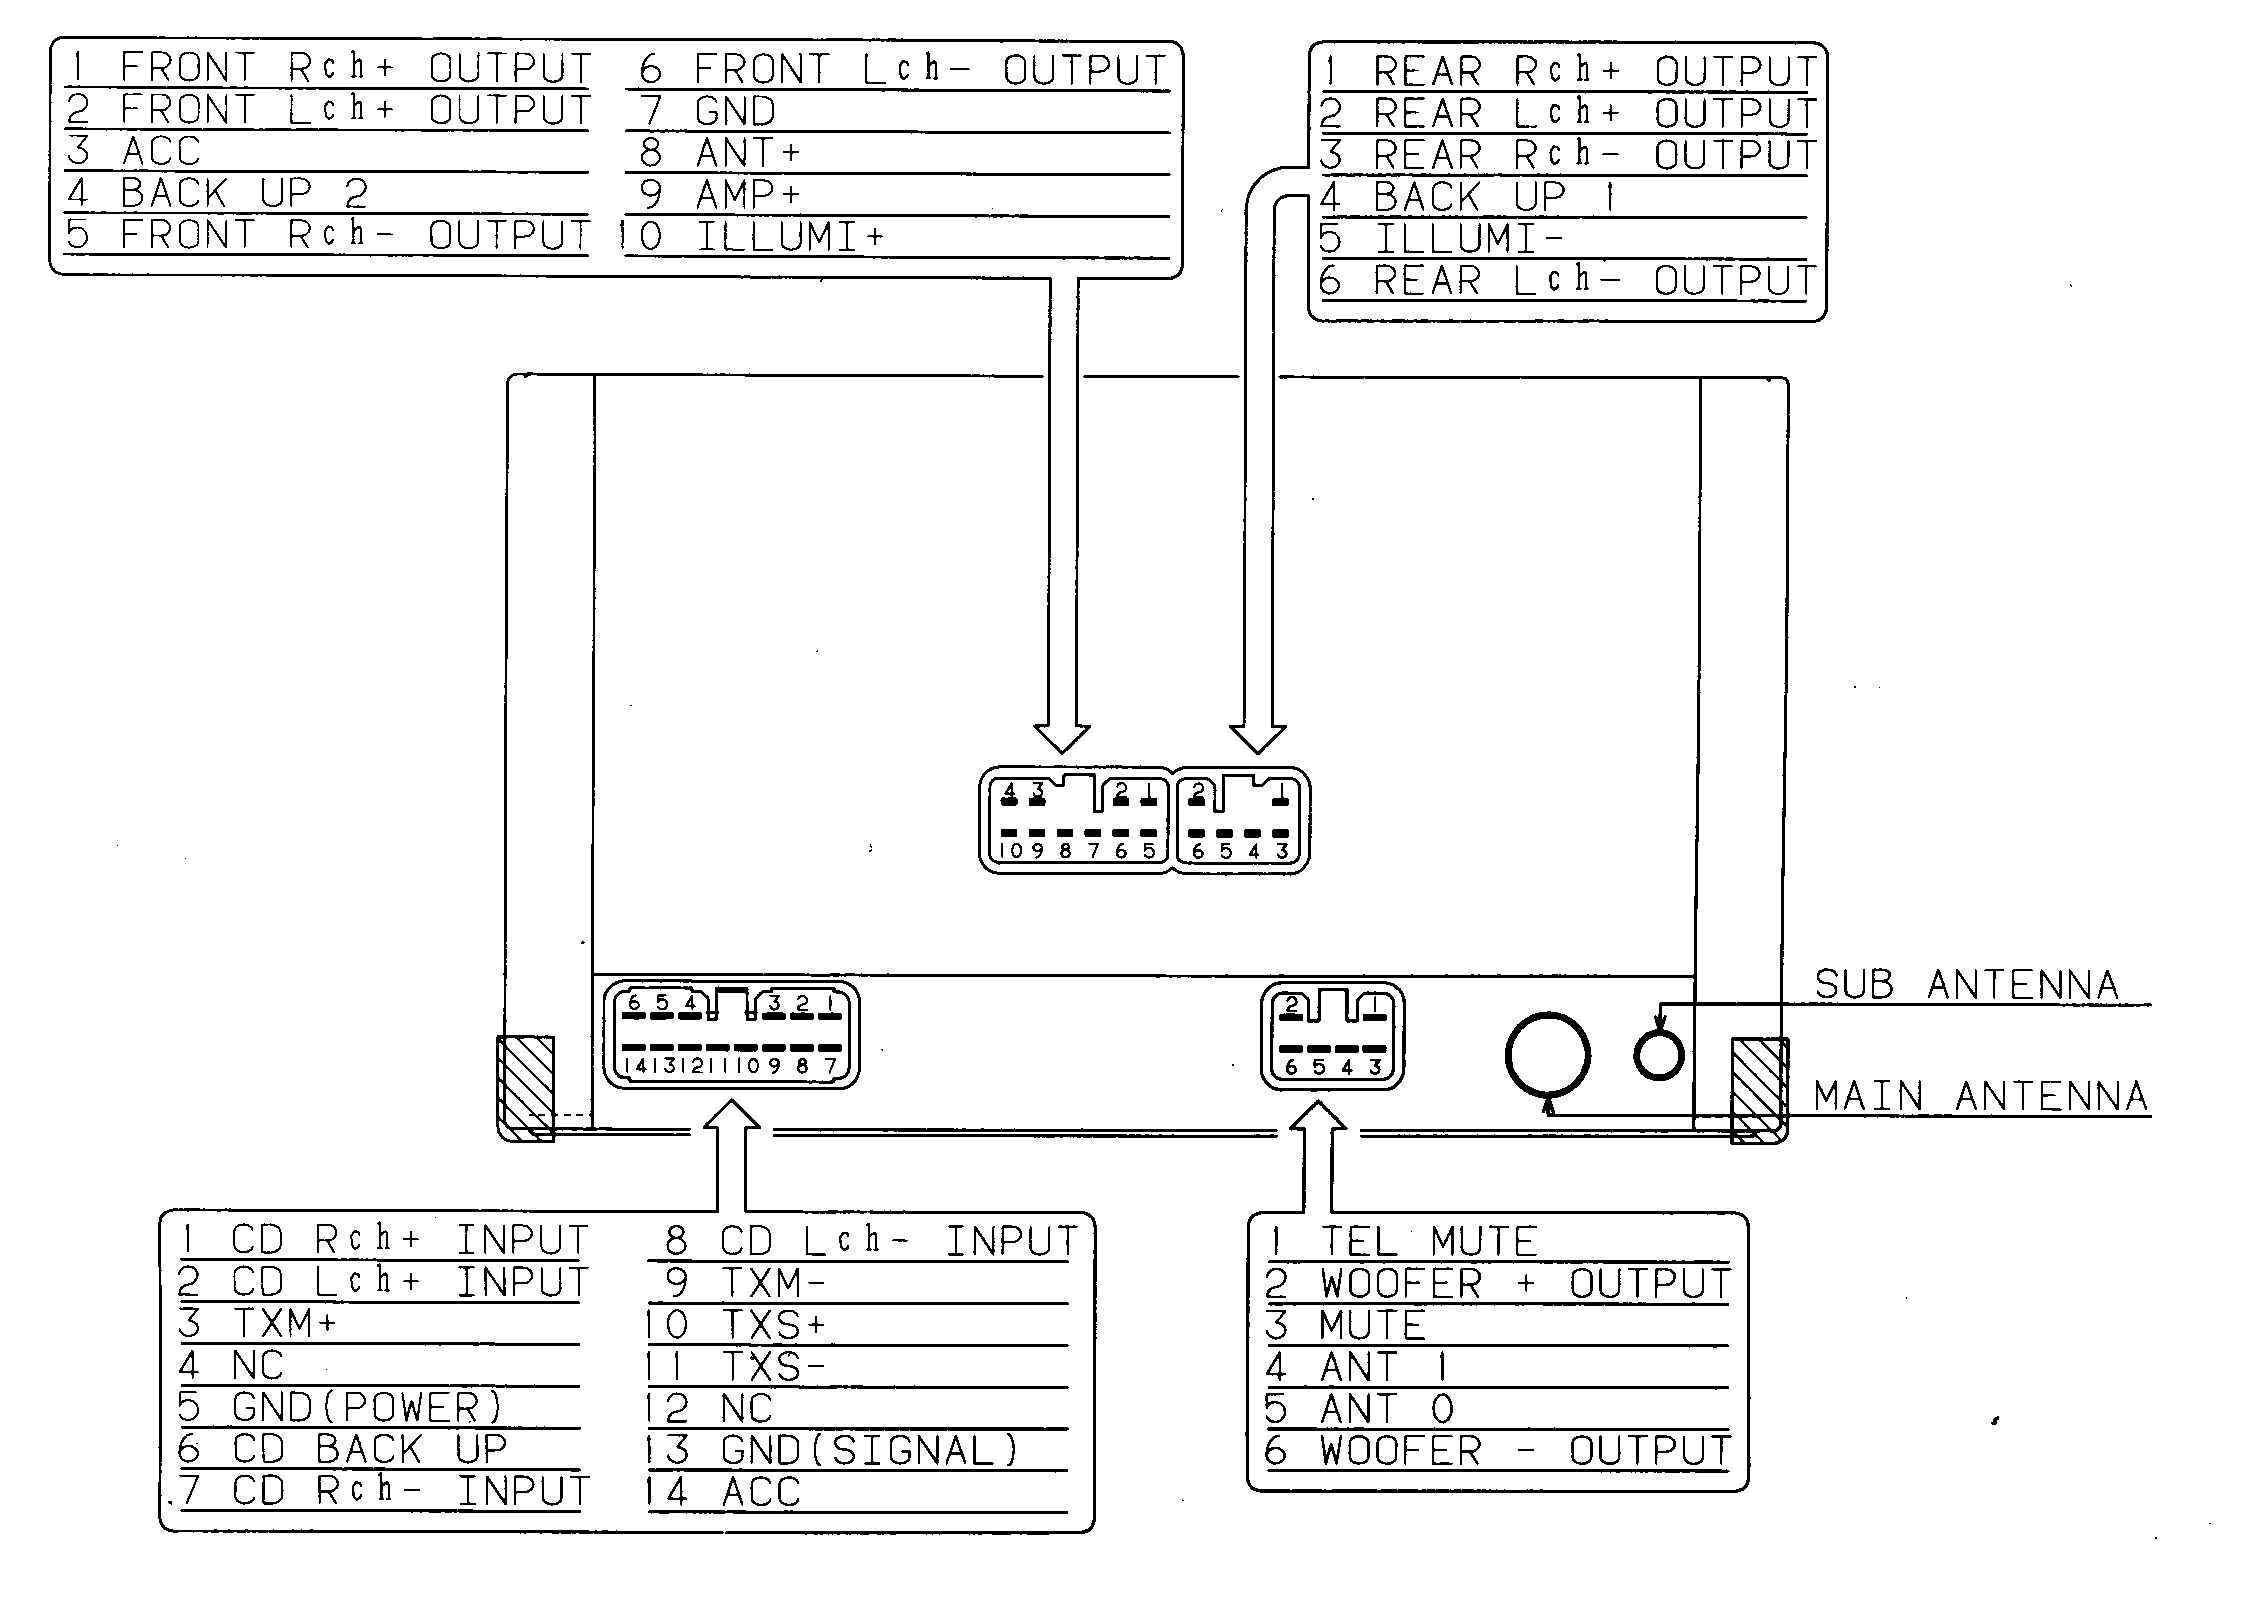 ... Lexus car stereo wiring diagram harness pinout connector wire 1996 jeep  grand cherokee car stereo radio